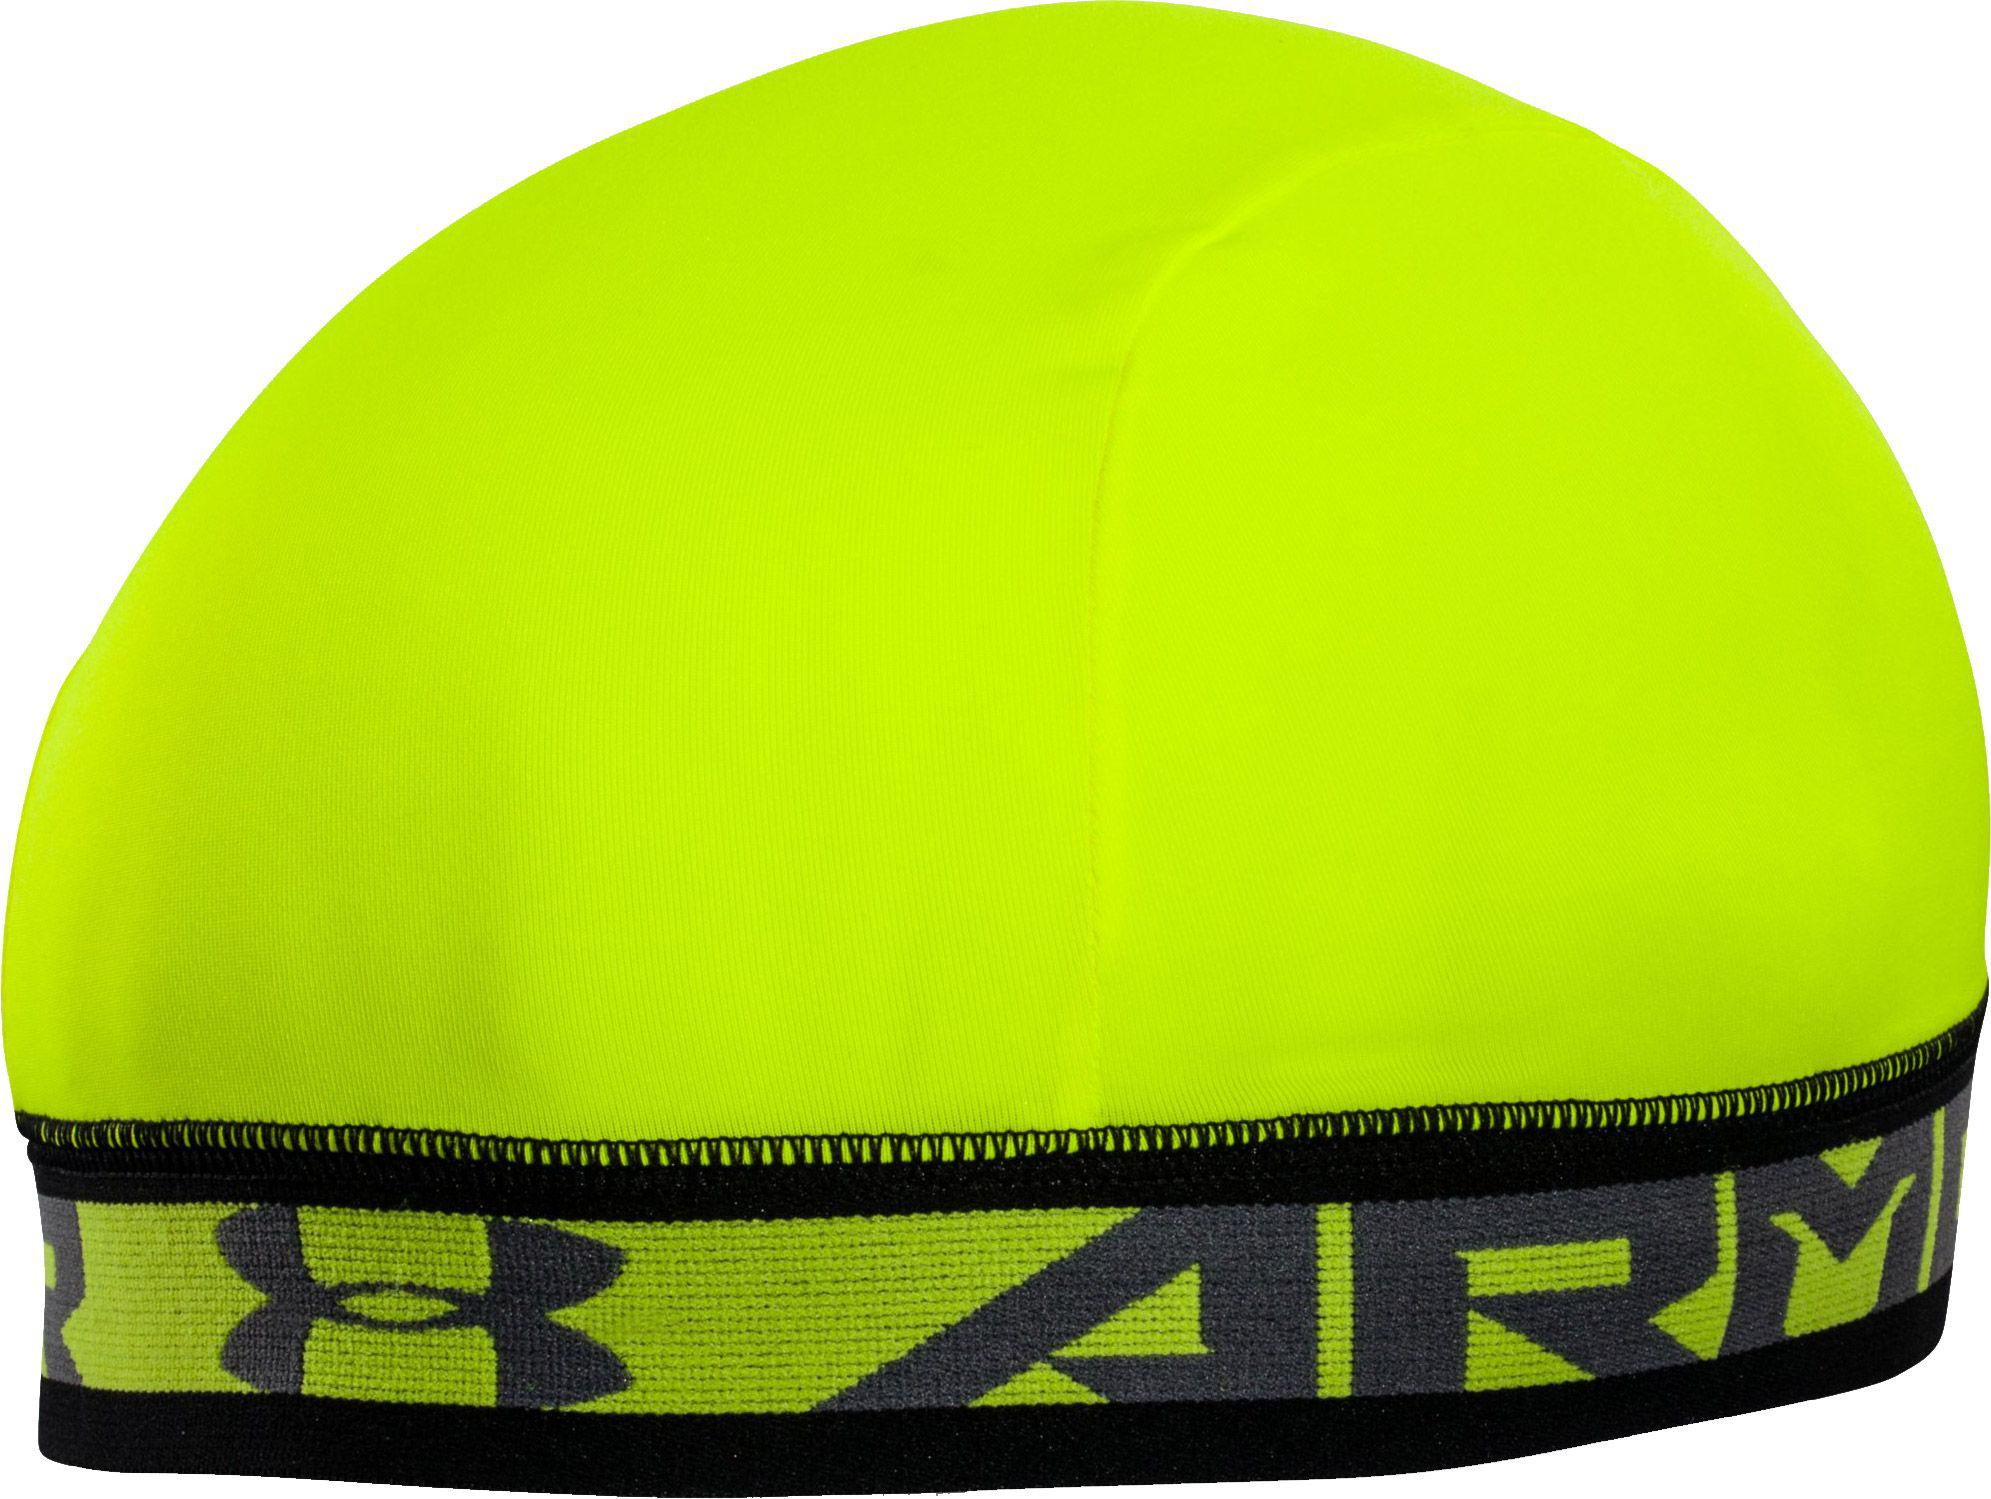 e93faa6be35 Lyst - Under Armour Original Skull Cap Ii in Yellow for Men